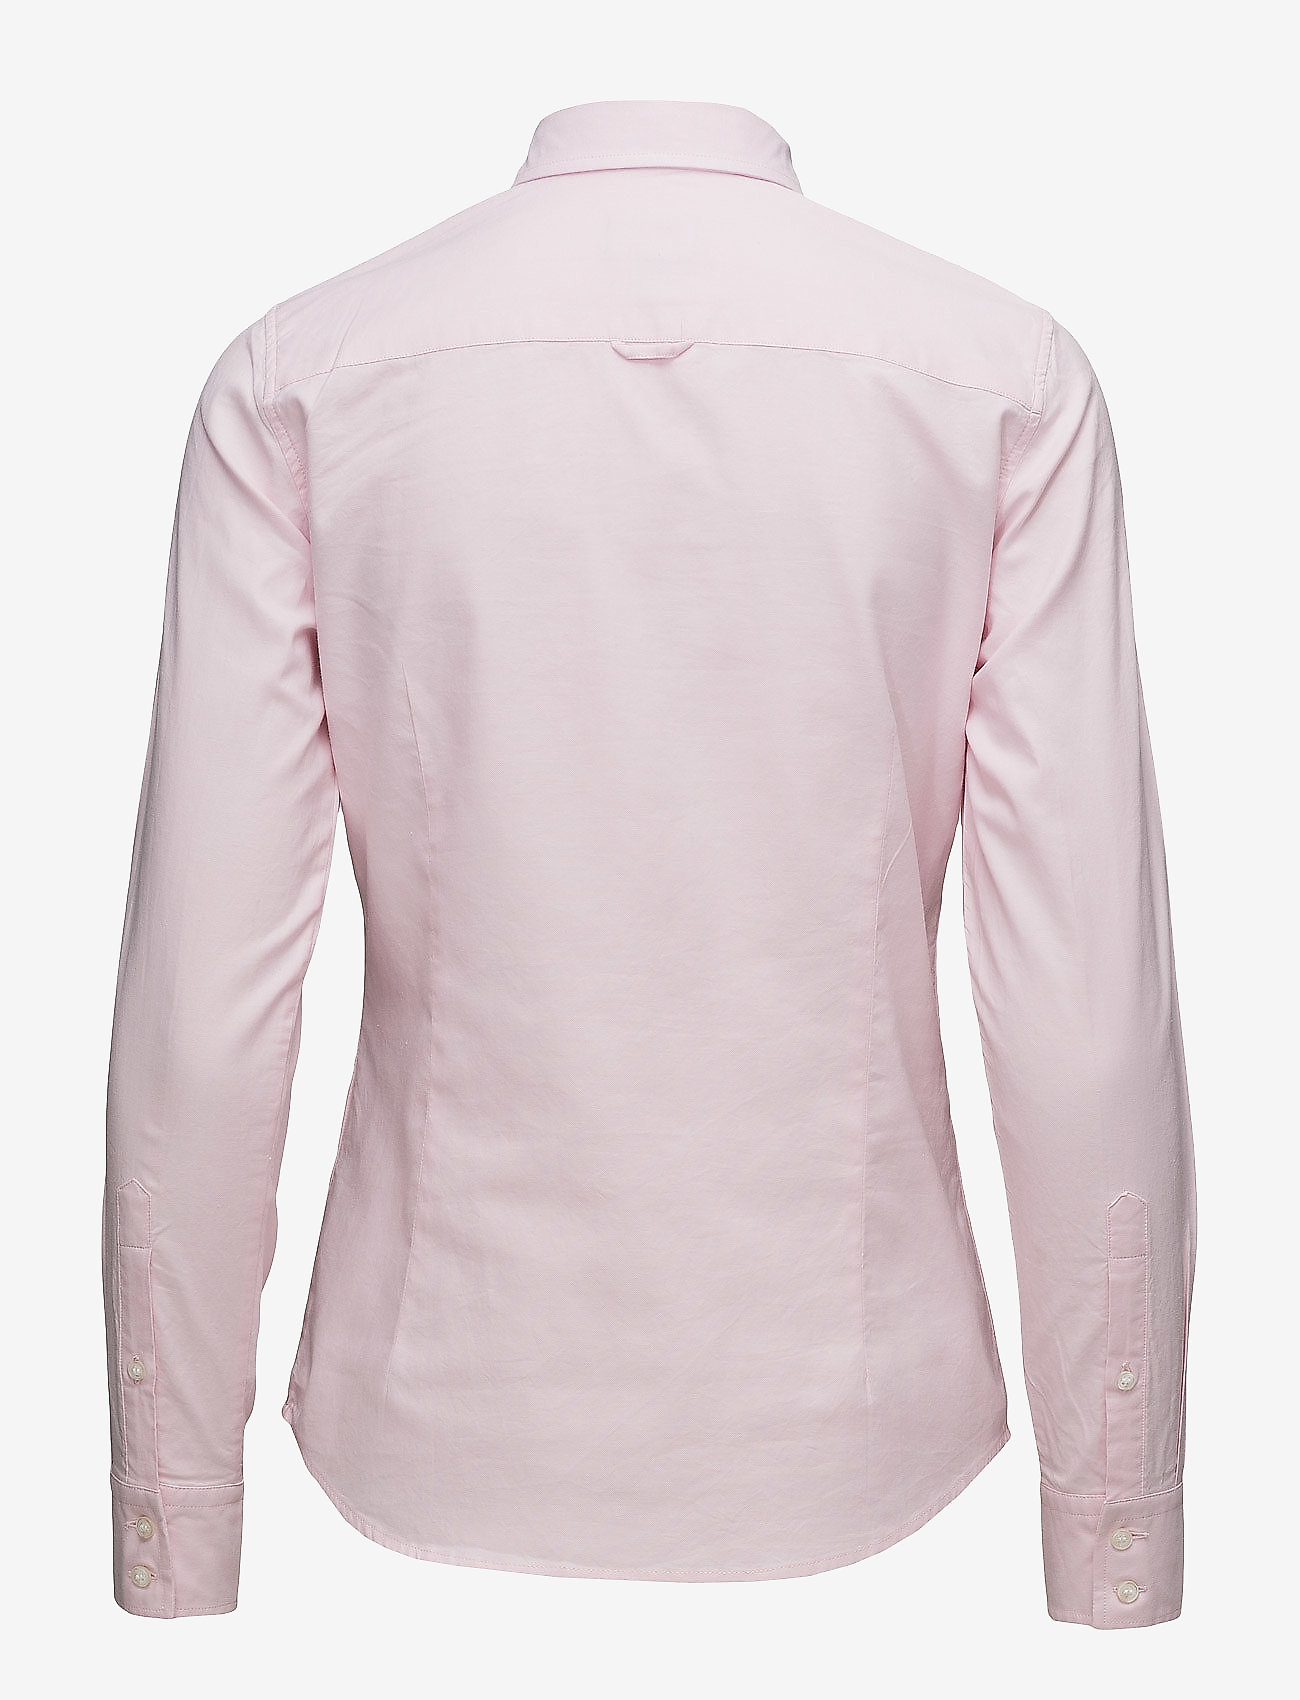 GANT - STRETCH OXFORD SOLID - long-sleeved shirts - light pink - 1